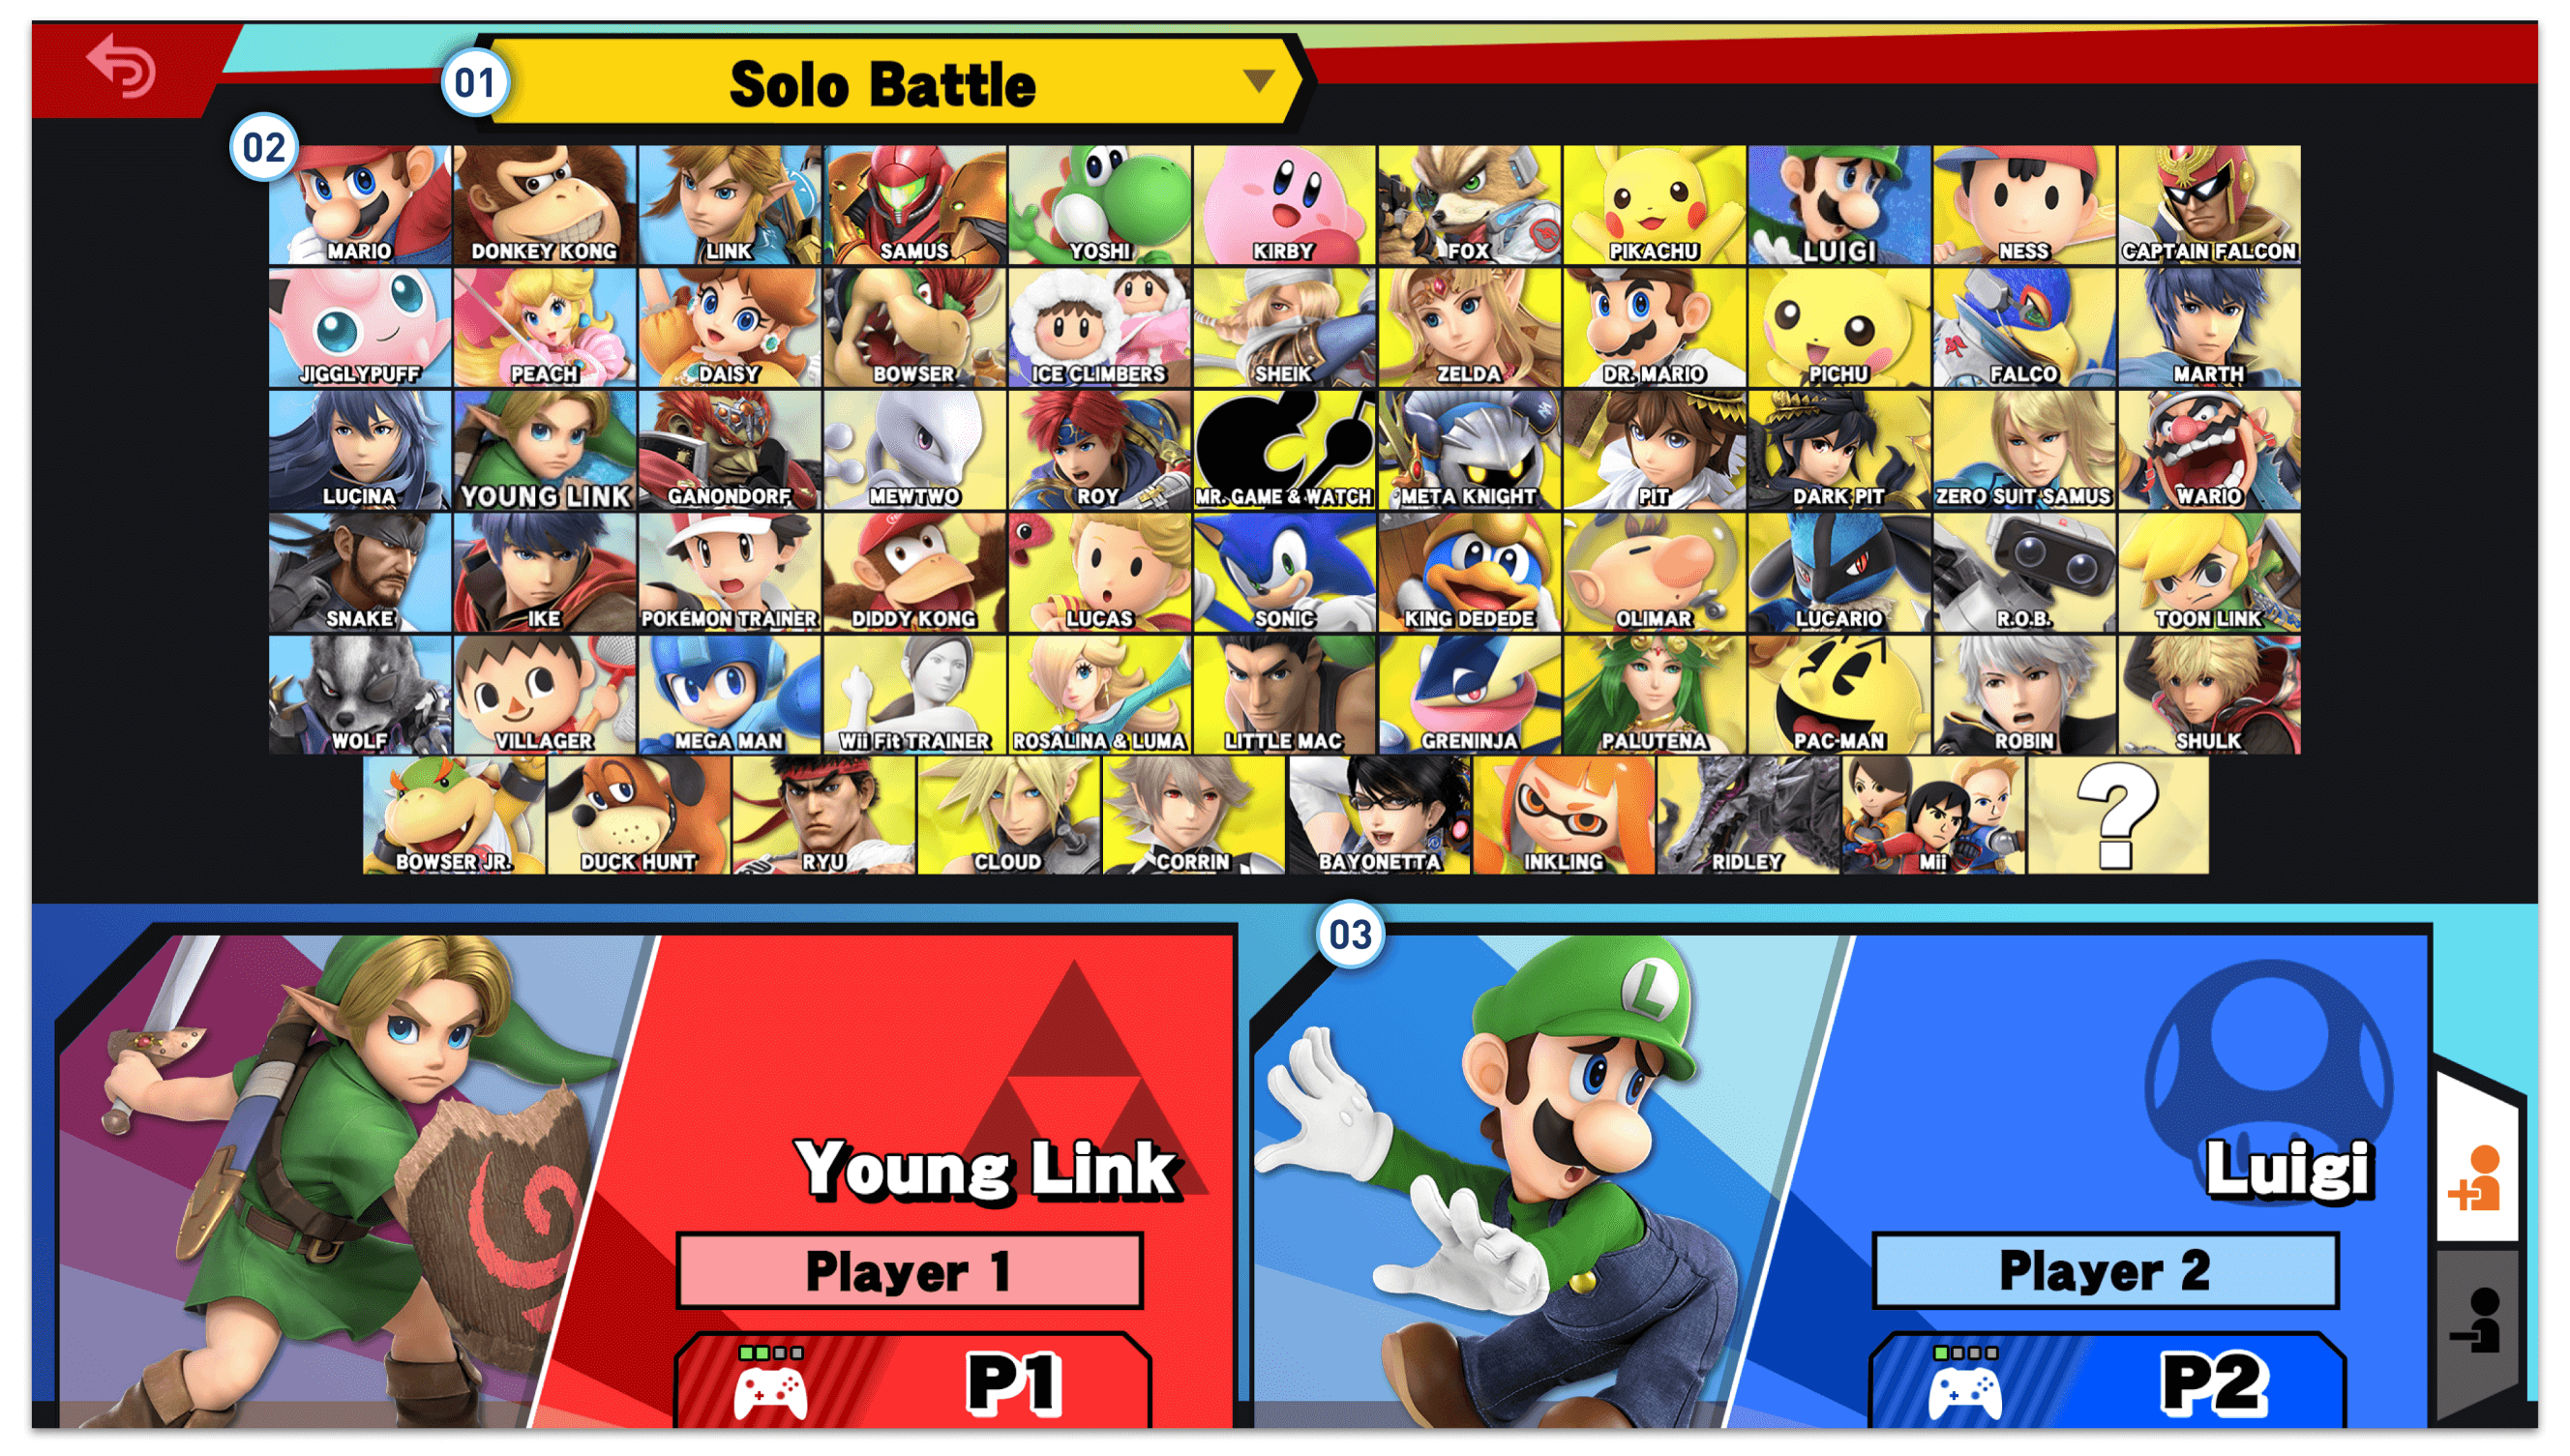 The original Smash Bros' character selection UI.